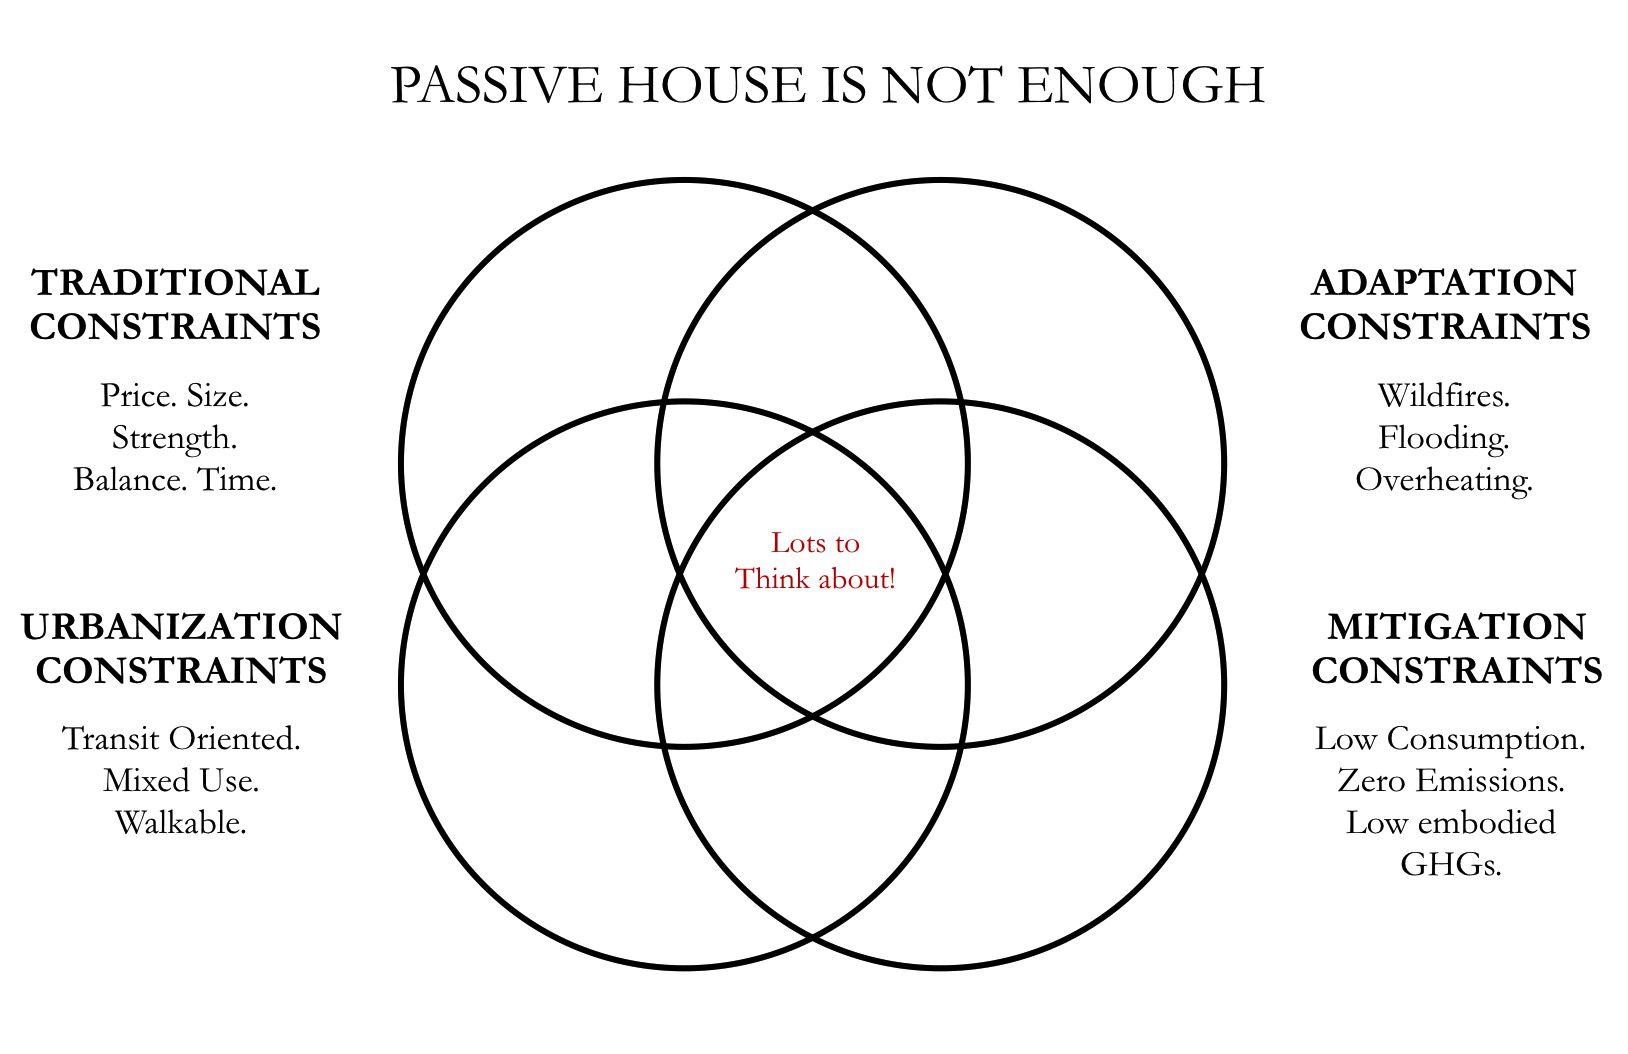 Passive House is not enough